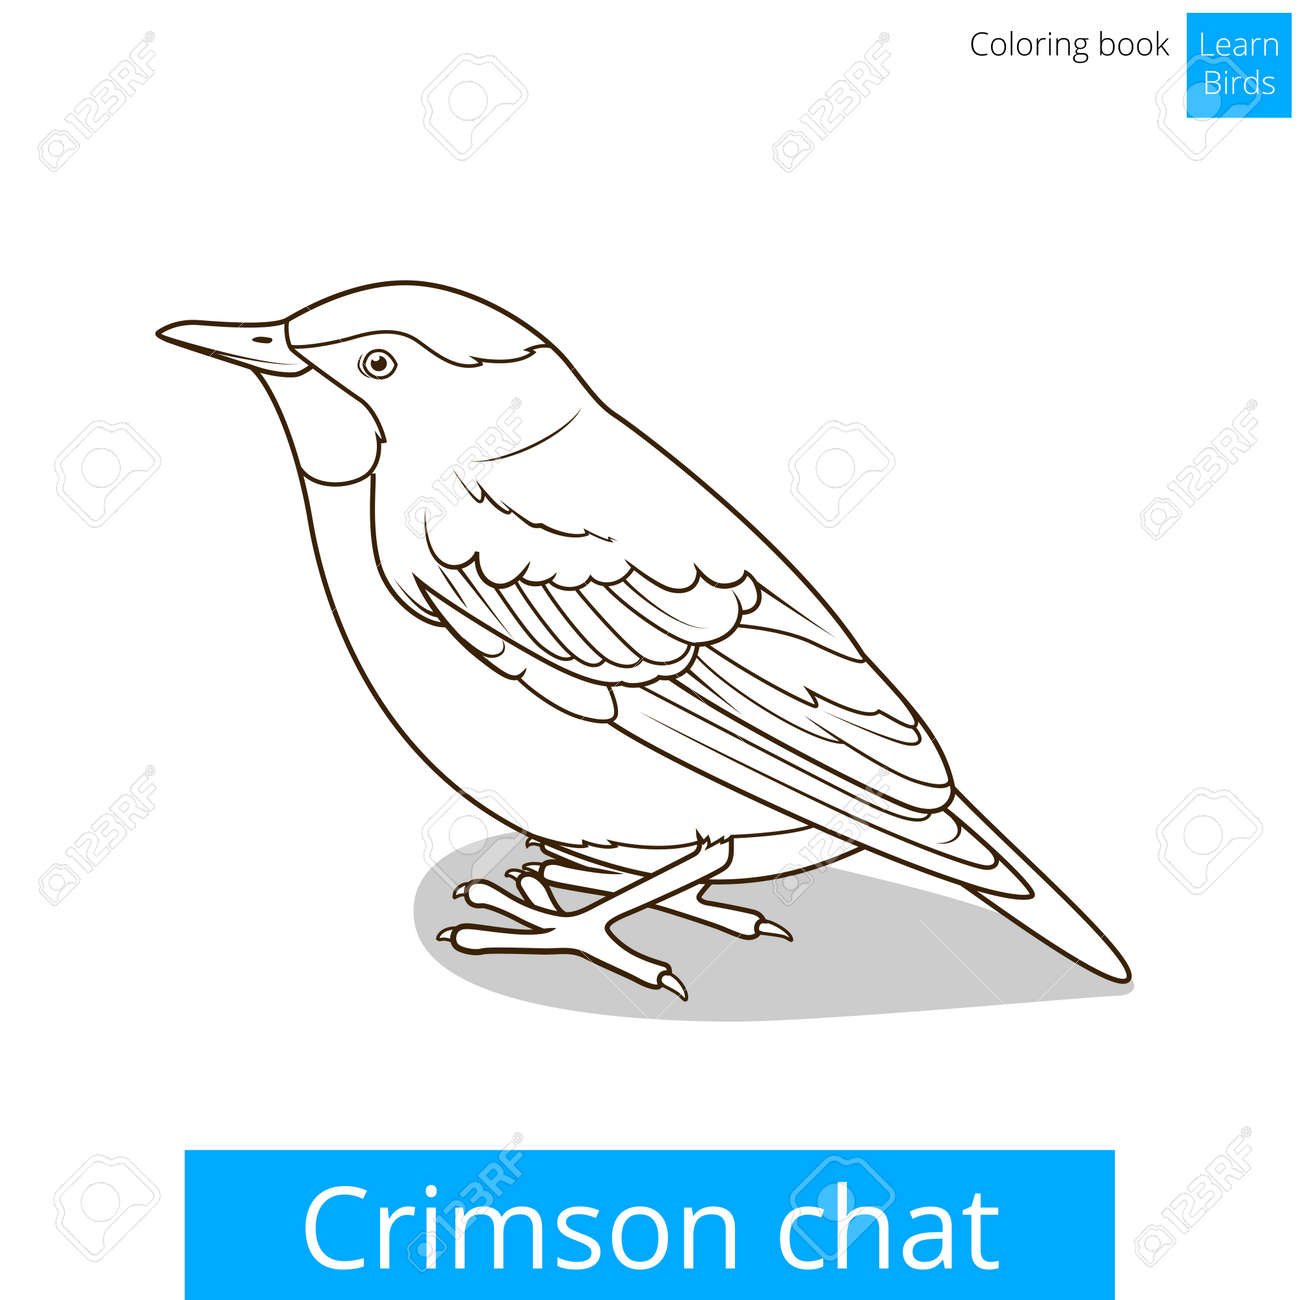 Crimson Chat Bird Learn Birds Educational Game Coloring Book Vector Illustration Stock